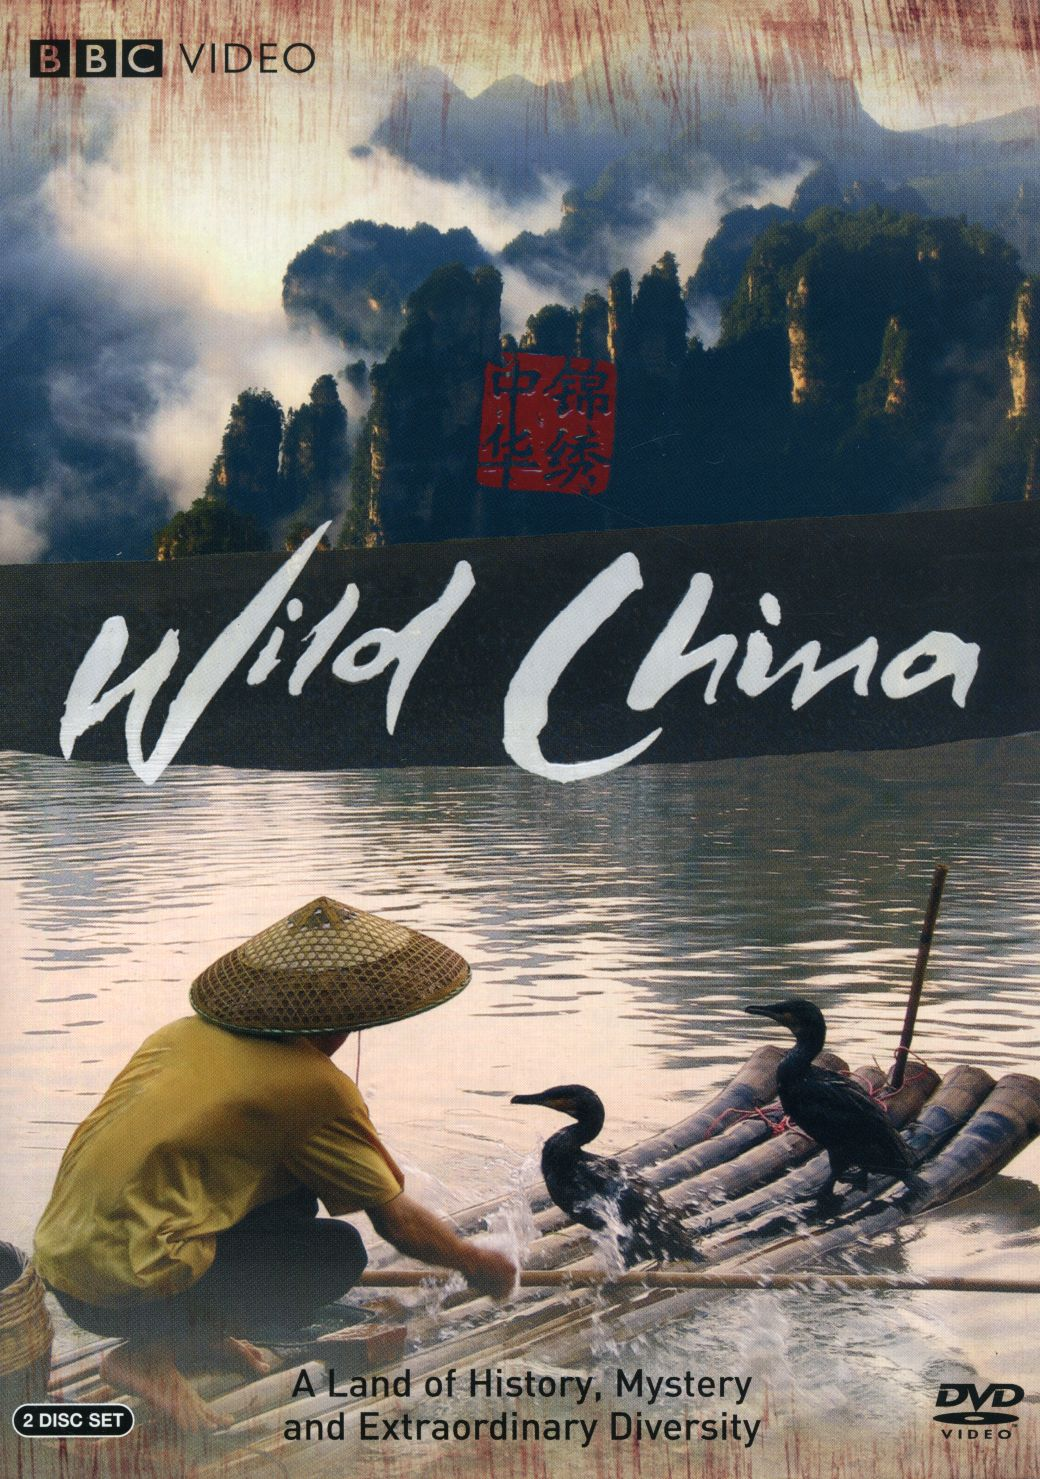 wildChina.jpg